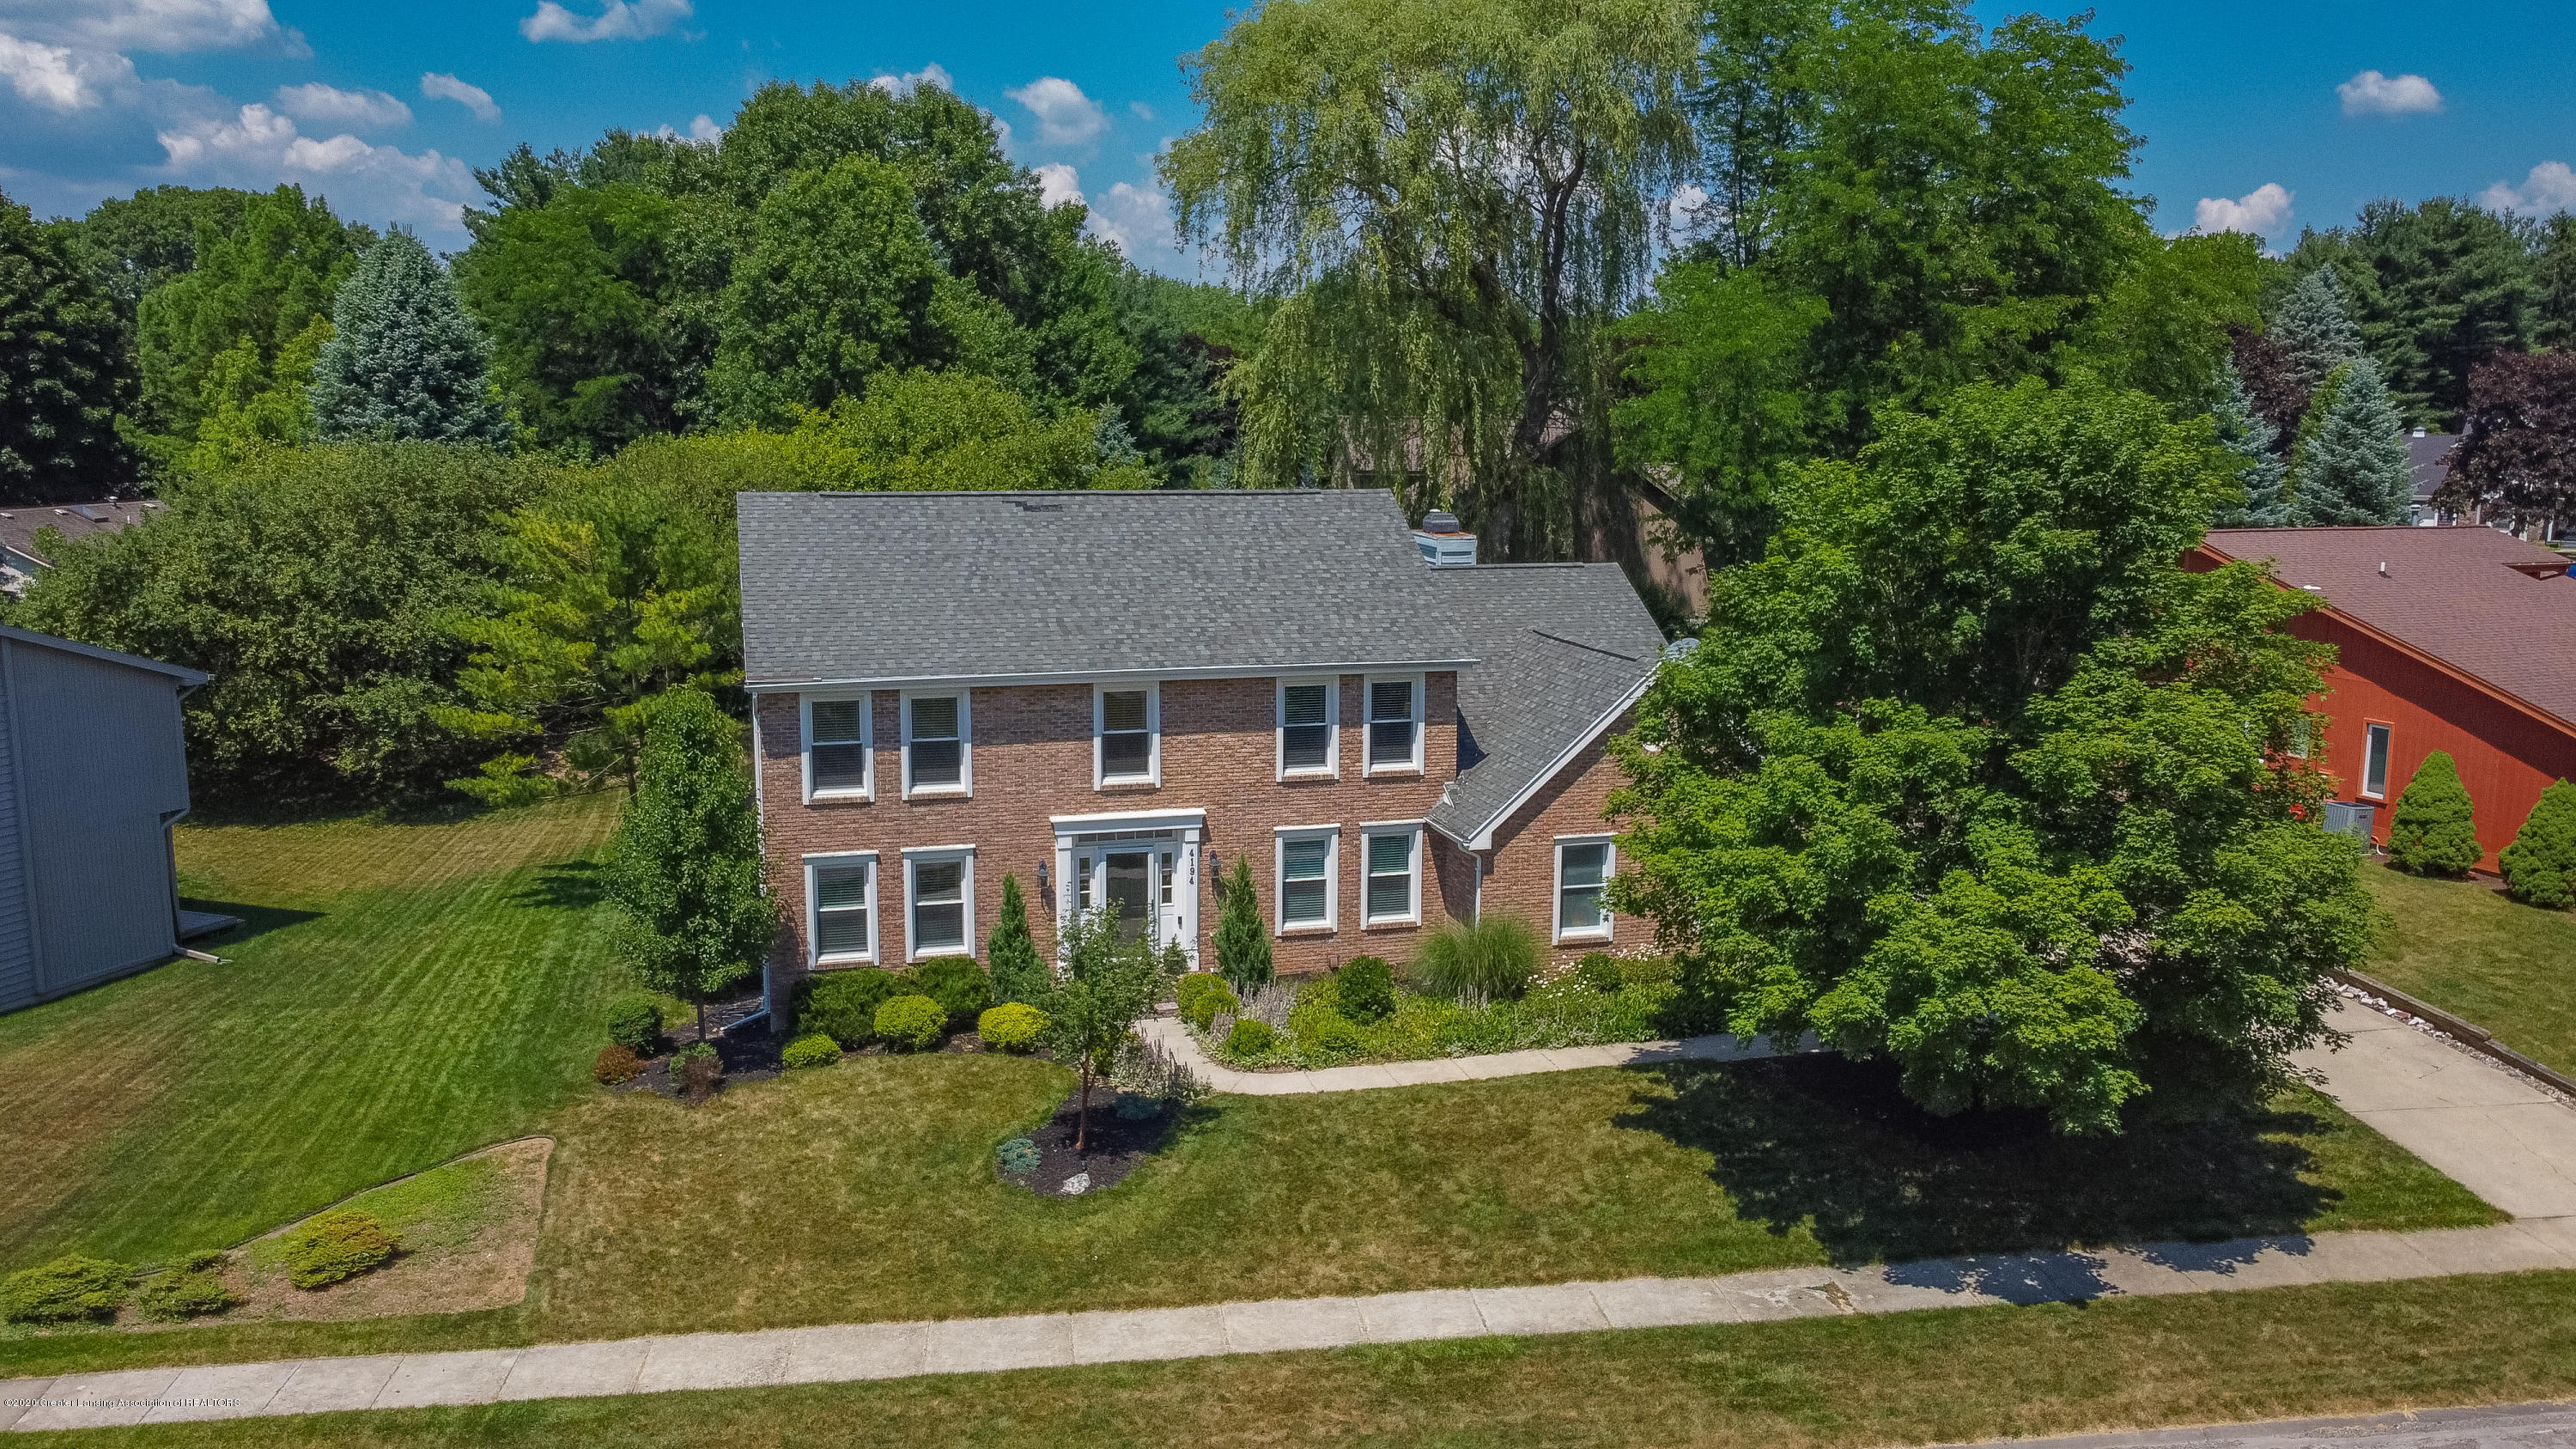 4194 Indian Glen Dr - Aerial View - 49